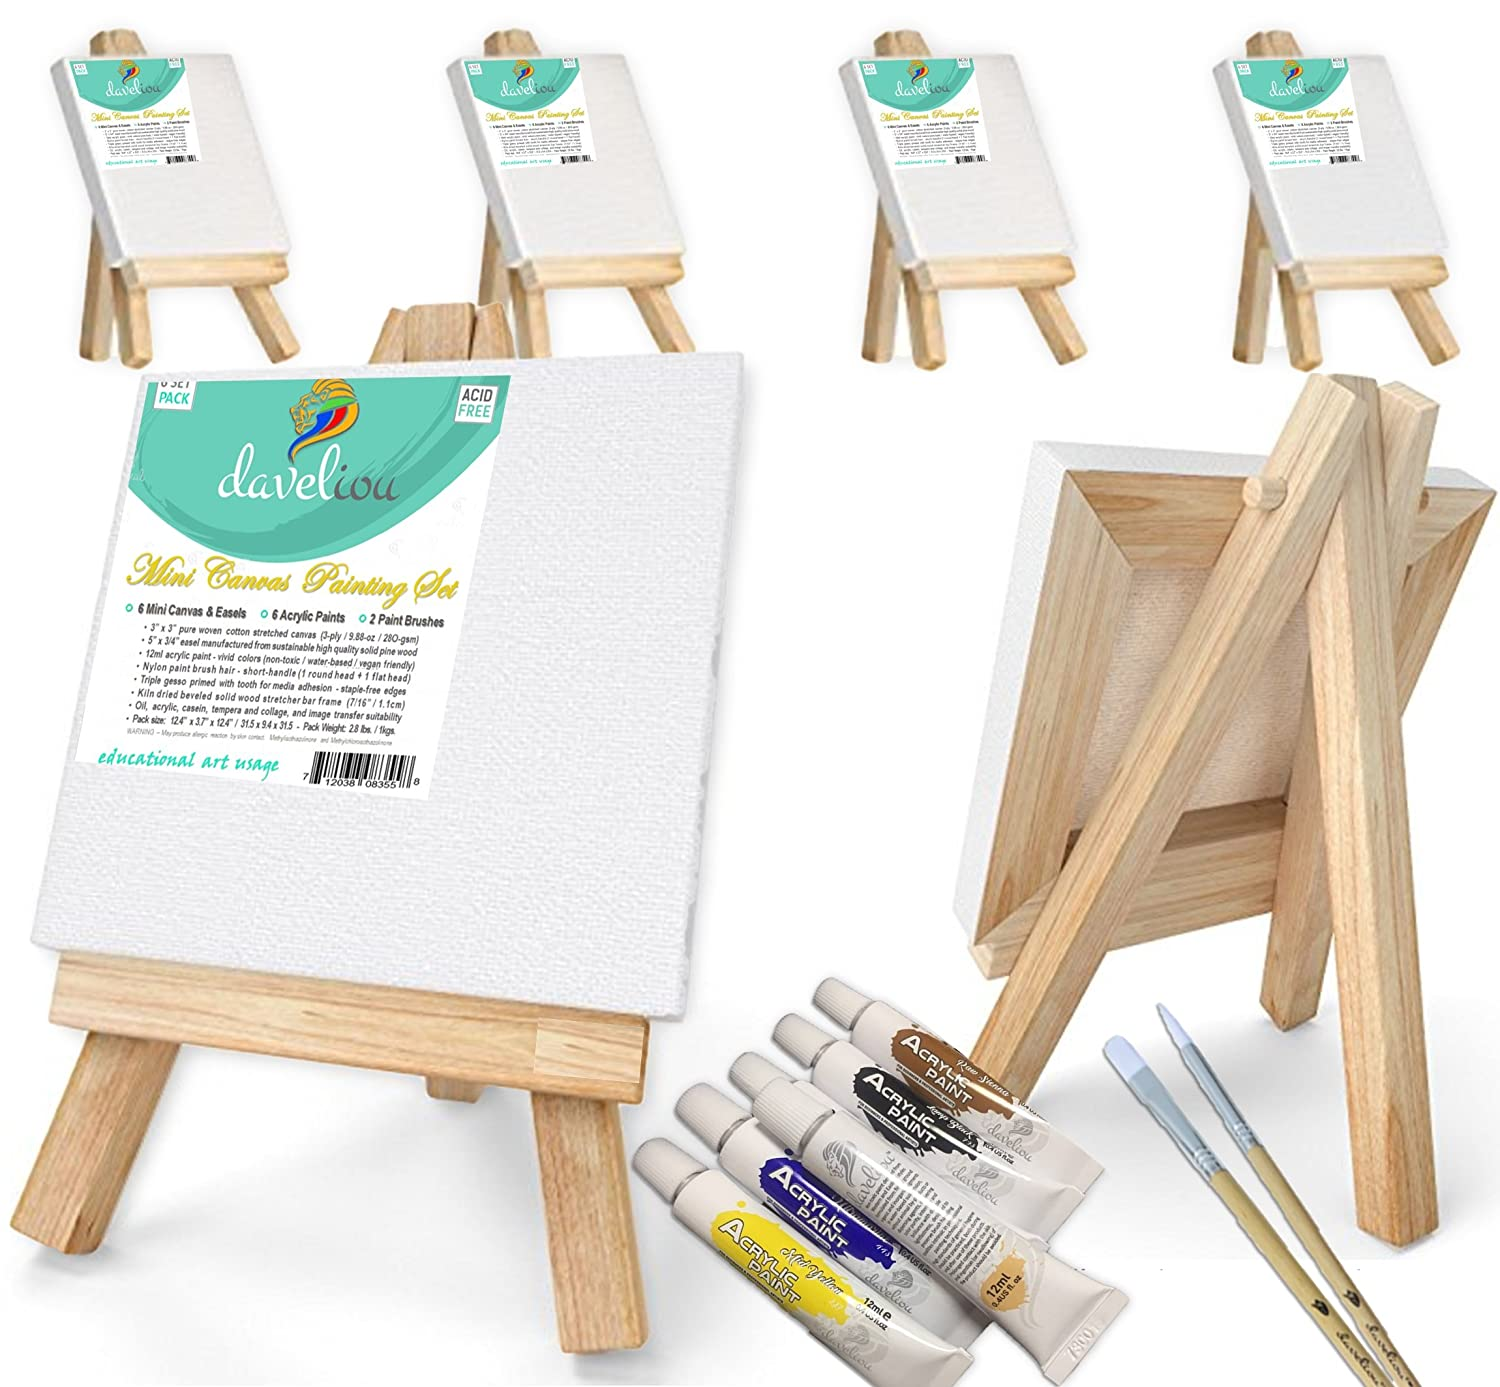 "Daveliou Mini Canvas Painting Set 3x3"" (7.6x7.6 cm) - Blank Stretched Framed Canvas 6 Piece Pack - 5"" (12.7 cm) Easel - 6 Acrylic Paints - 2 Paint Brushes 9202100034"